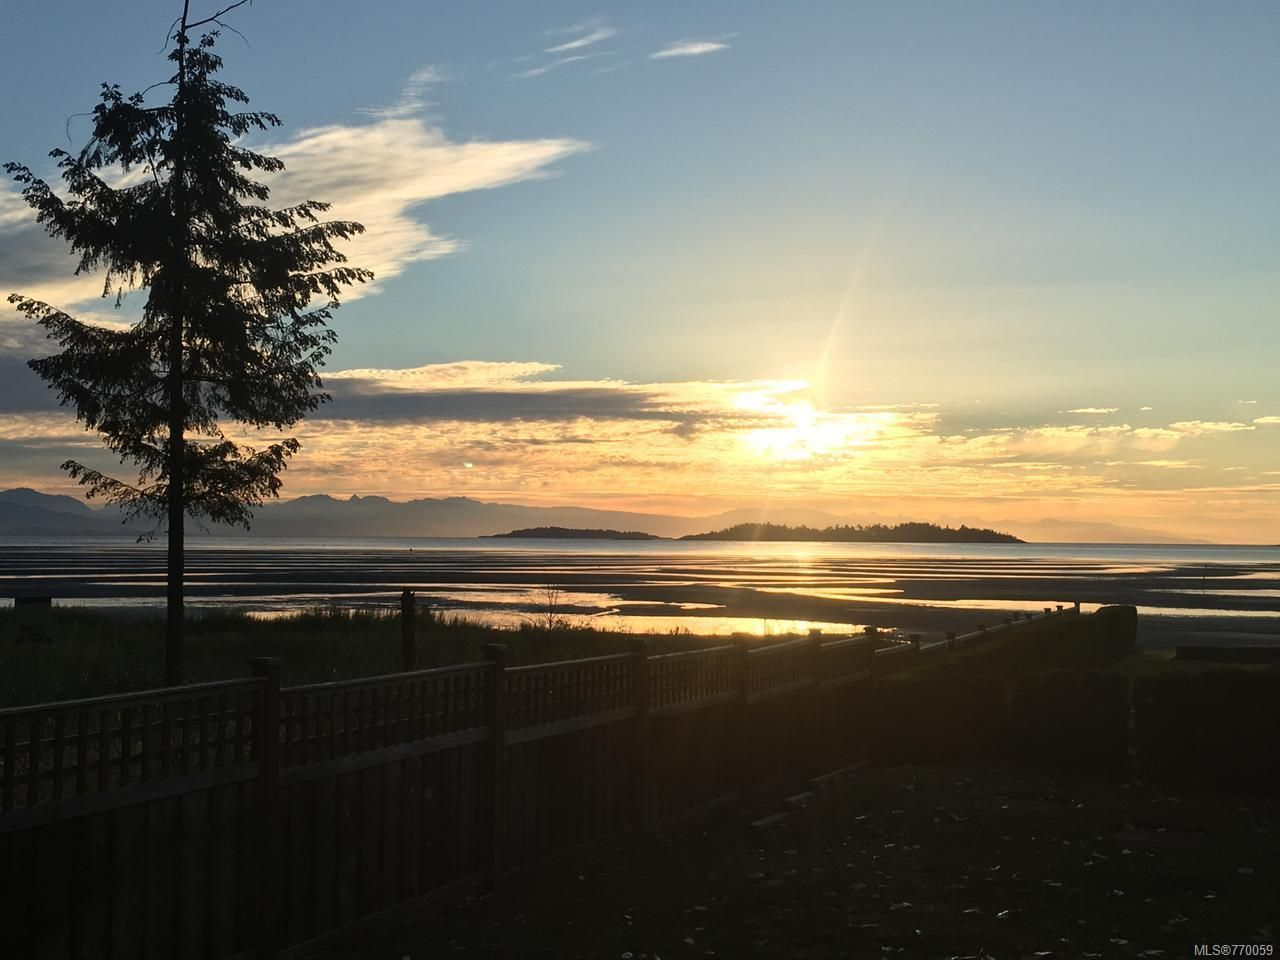 Main Photo: 10 1065 Tanglewood Pl in PARKSVILLE: PQ Parksville Row/Townhouse for sale (Parksville/Qualicum)  : MLS®# 770059